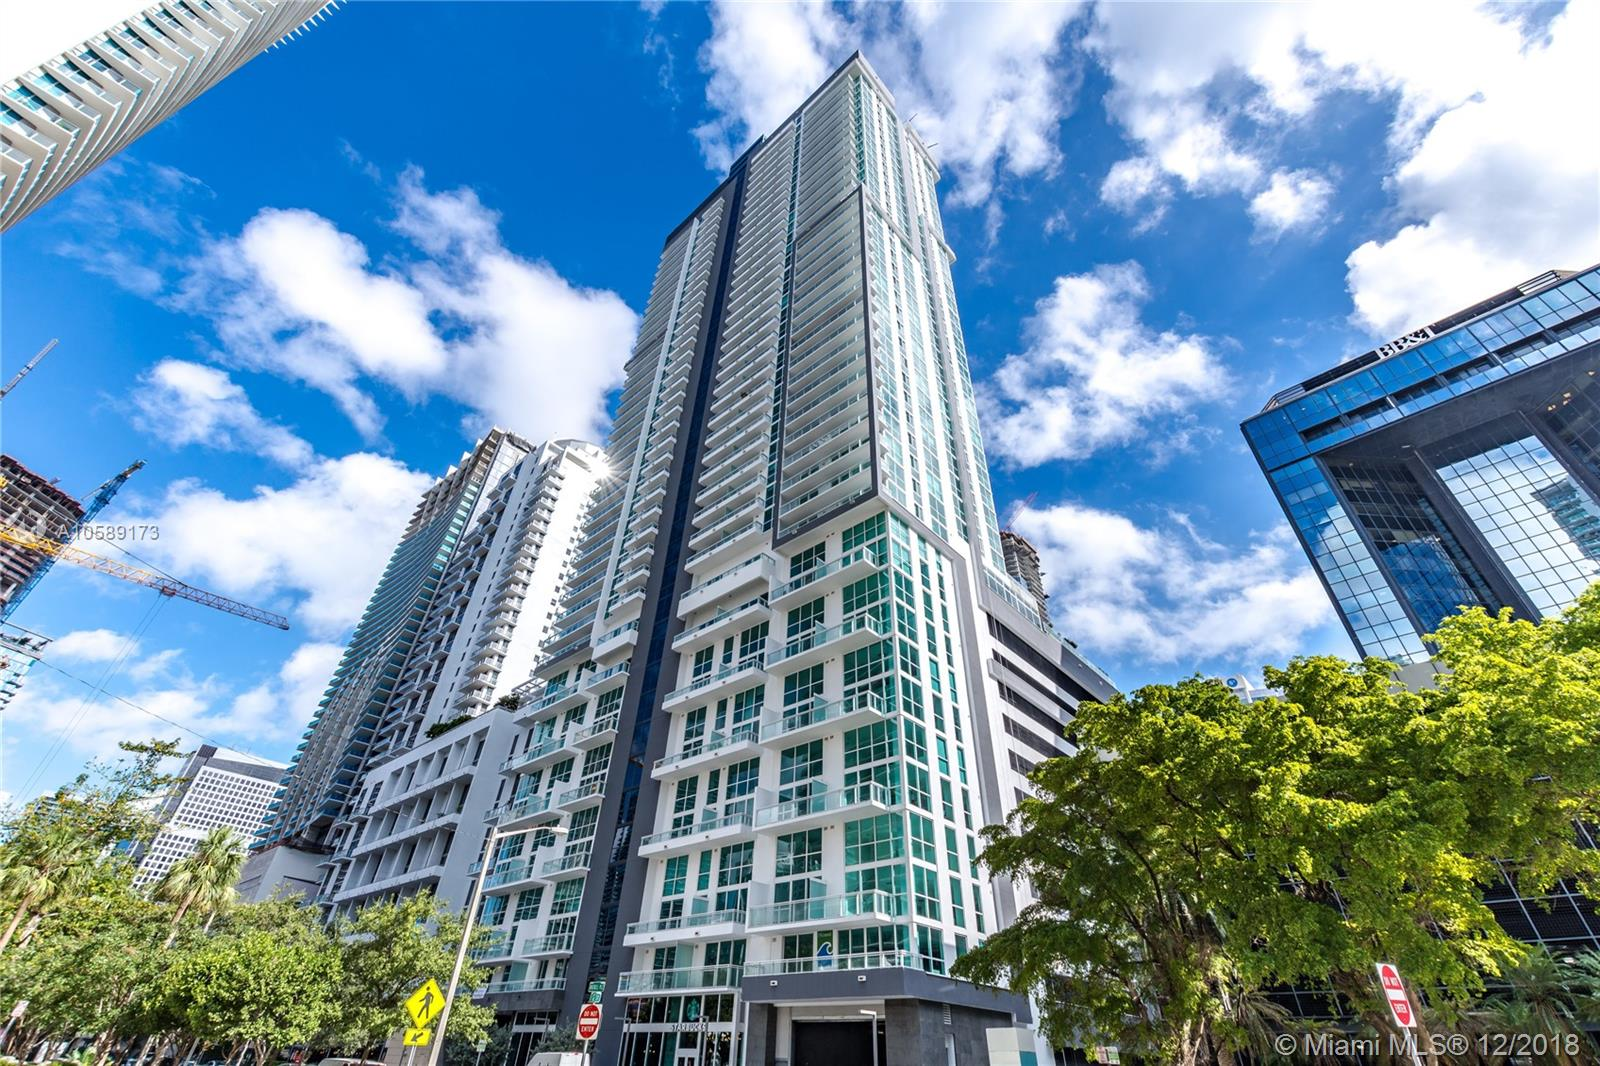 1080  BRICKELL AVE #505 For Sale A10589173, FL